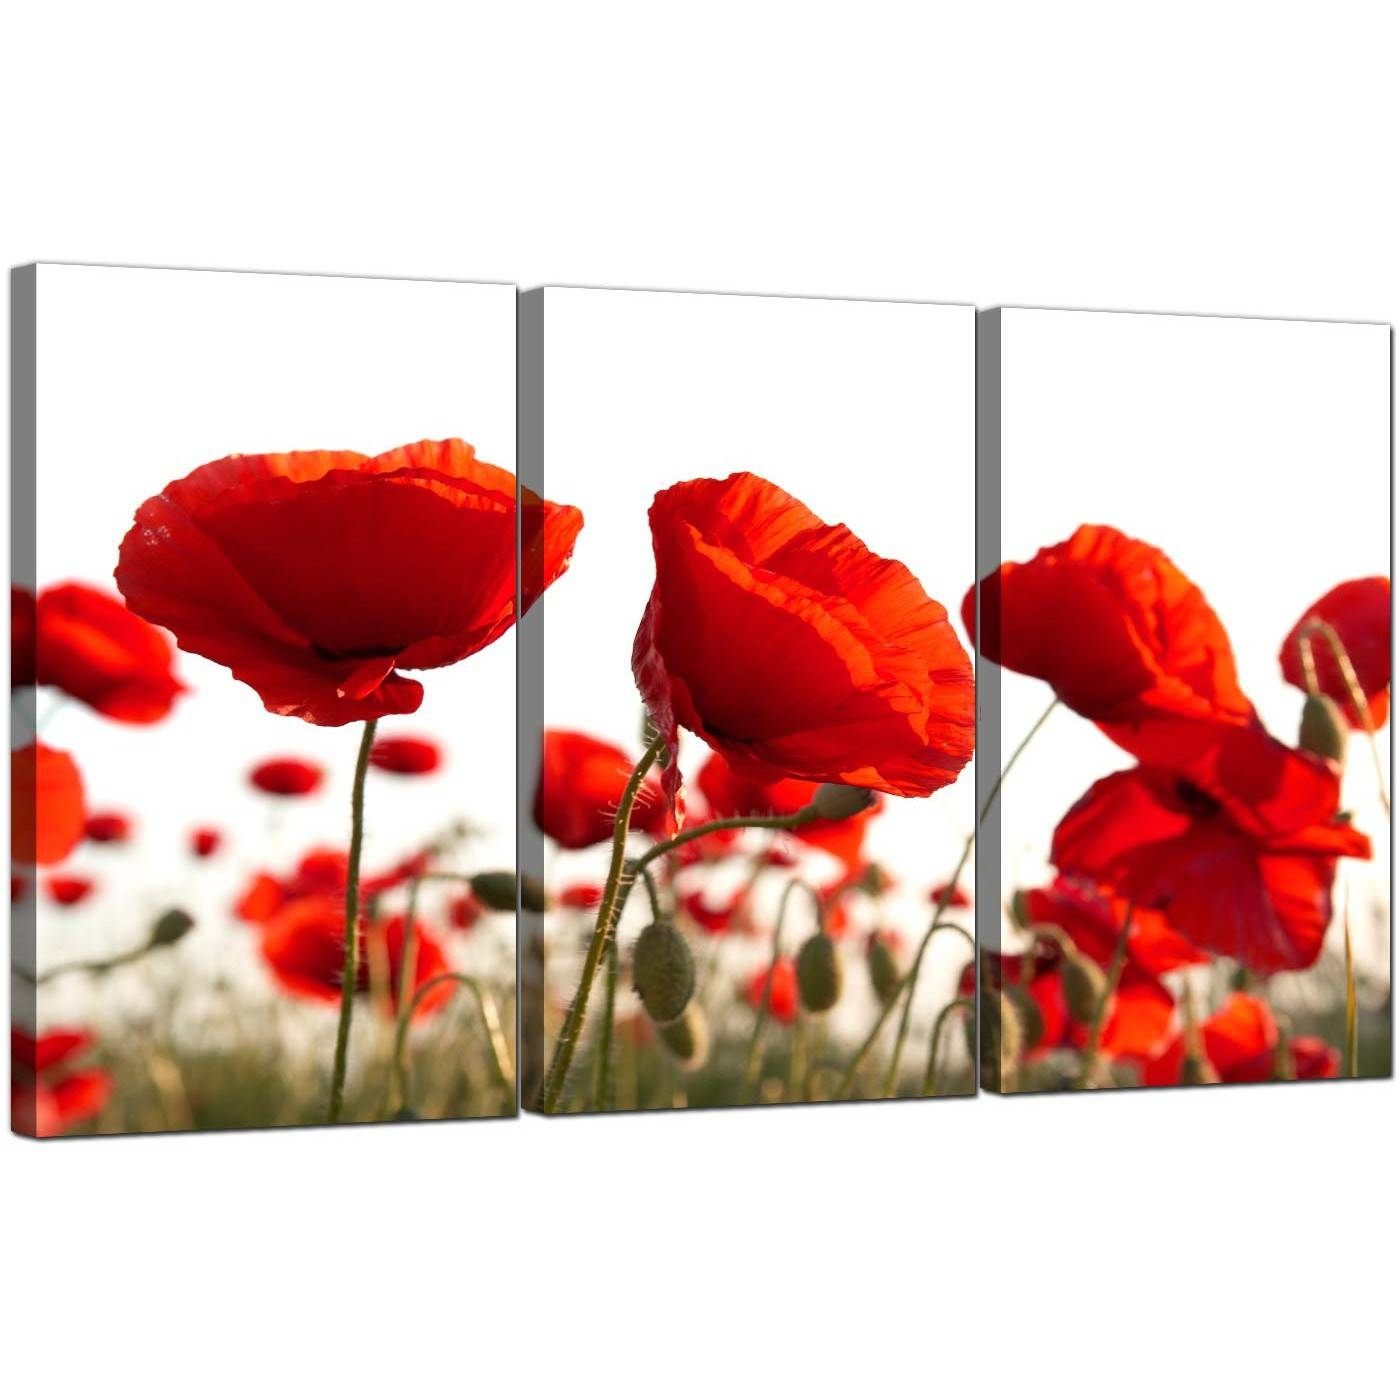 Poppy Canvas Wall Art Set Of 3 For Your Living Room Intended For Most Up To Date Red Poppy Canvas Wall Art (View 3 of 20)